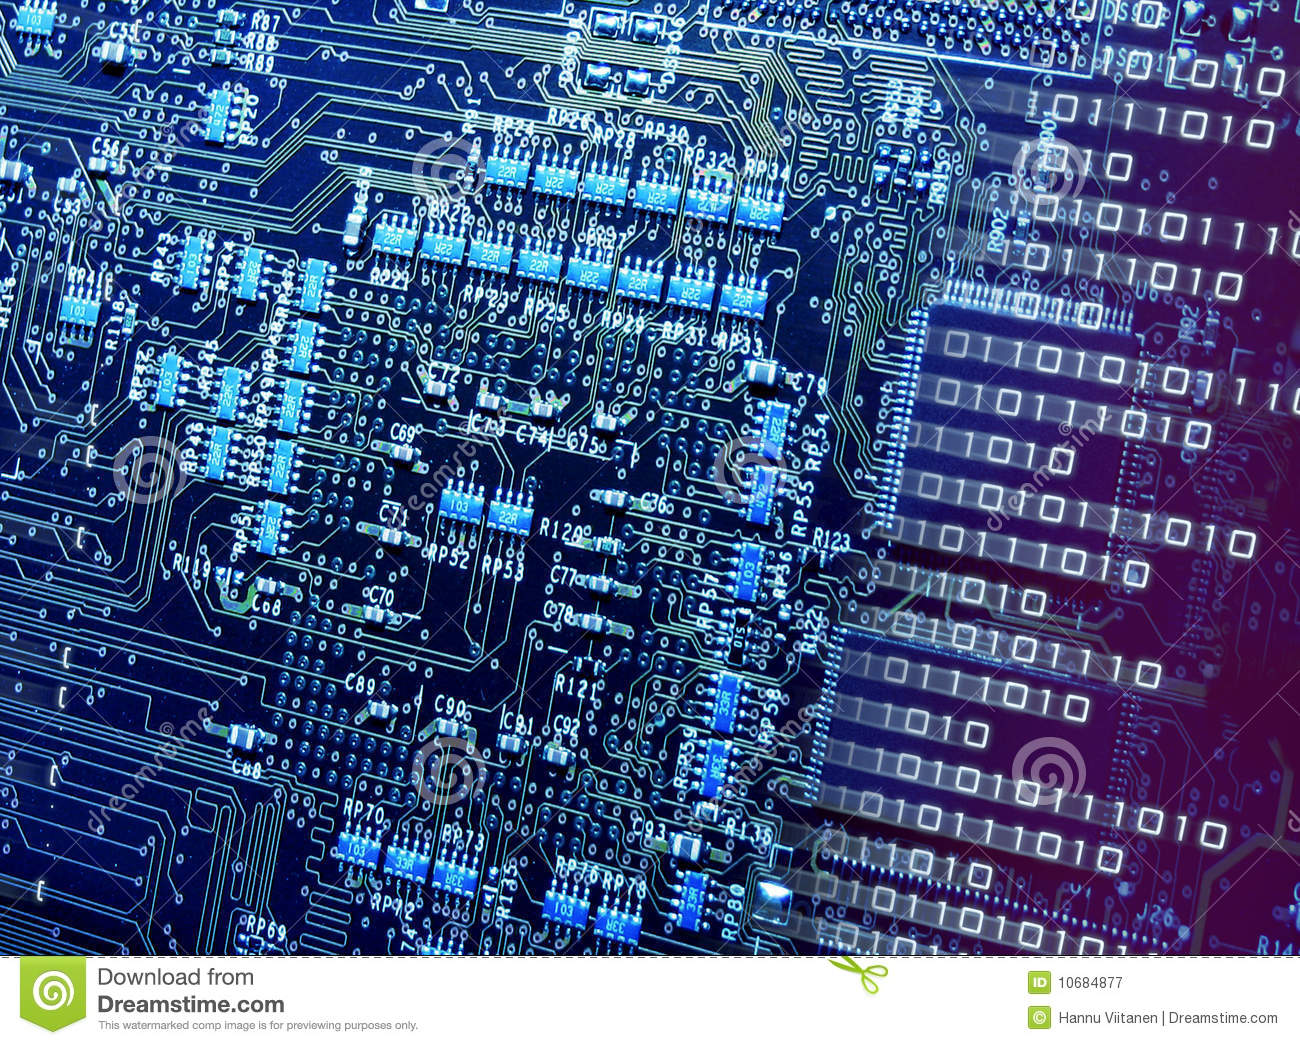 Image Of An Electronic Circuit Schematic Diagram Circuitry Shown Is A